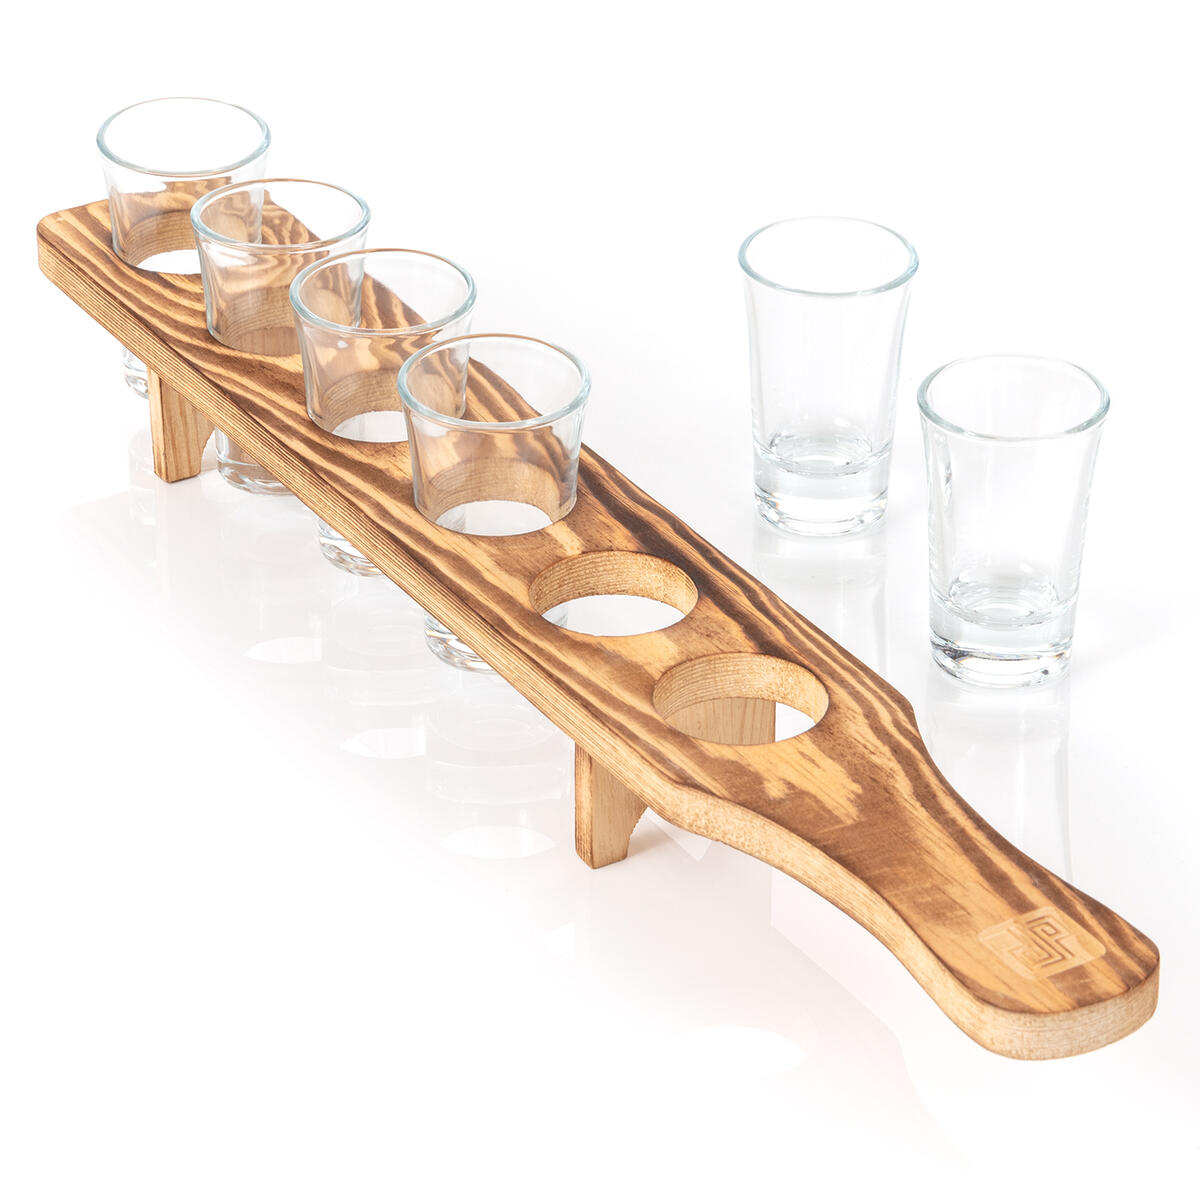 Don Paragone Shot Glasses Serving Tray and Shot Glass Set of 6 - Unique Rustic Wooden Holder for Drinking, Serving, Display and Storage - For Restaurant, Bar, Party, Family Gathering - Rustic Burnt